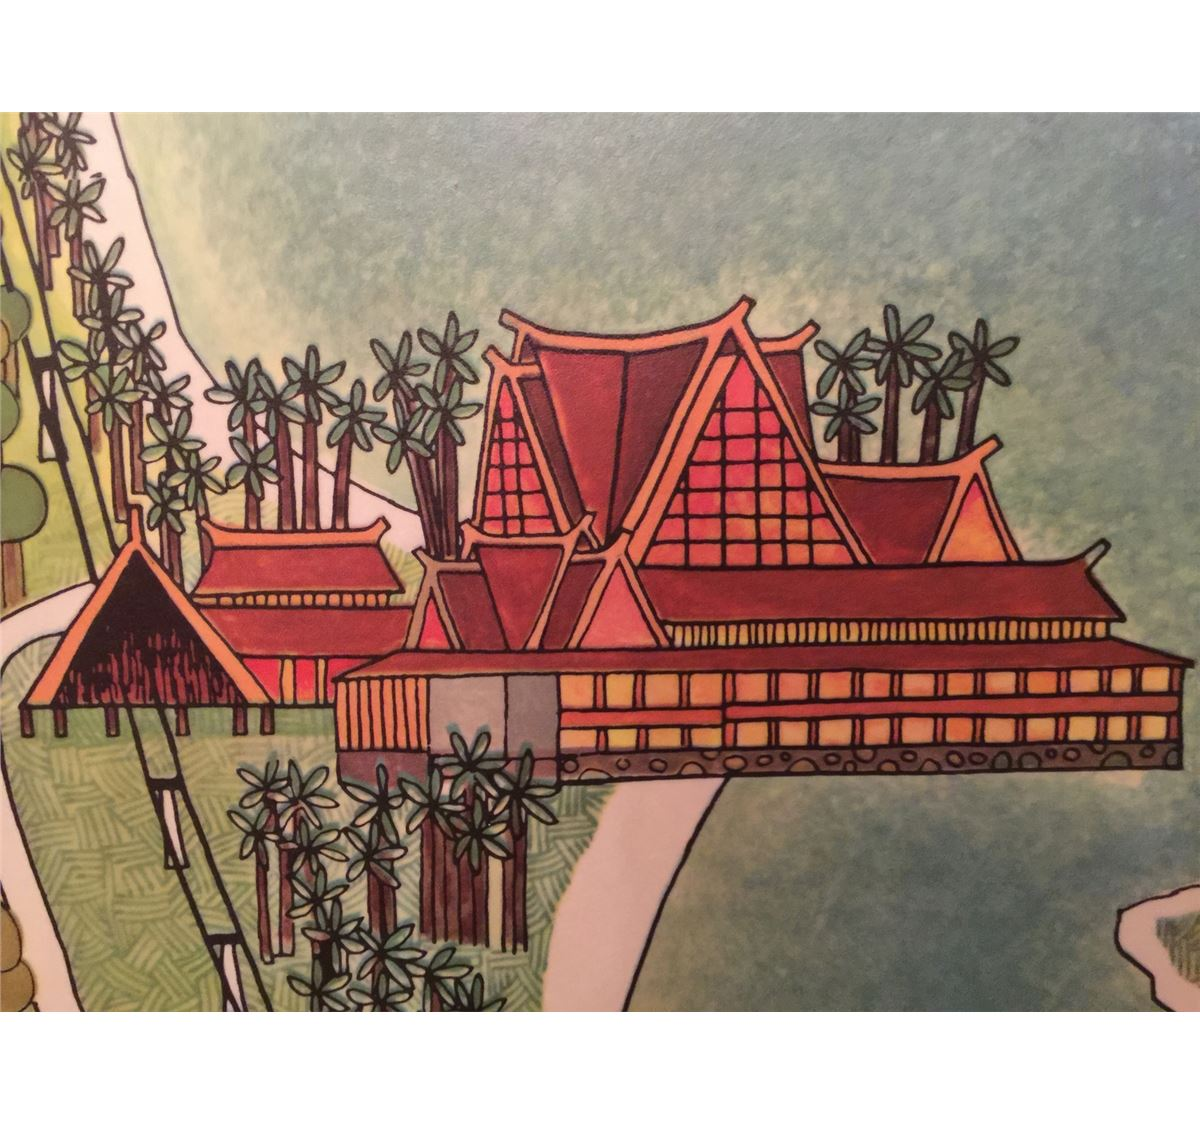 ... Image 3 : RARE ORIGINAL 1971 WALT DISNEY WORLD MAP WALL ART FROM  POLYNESIAN HOTEL ...